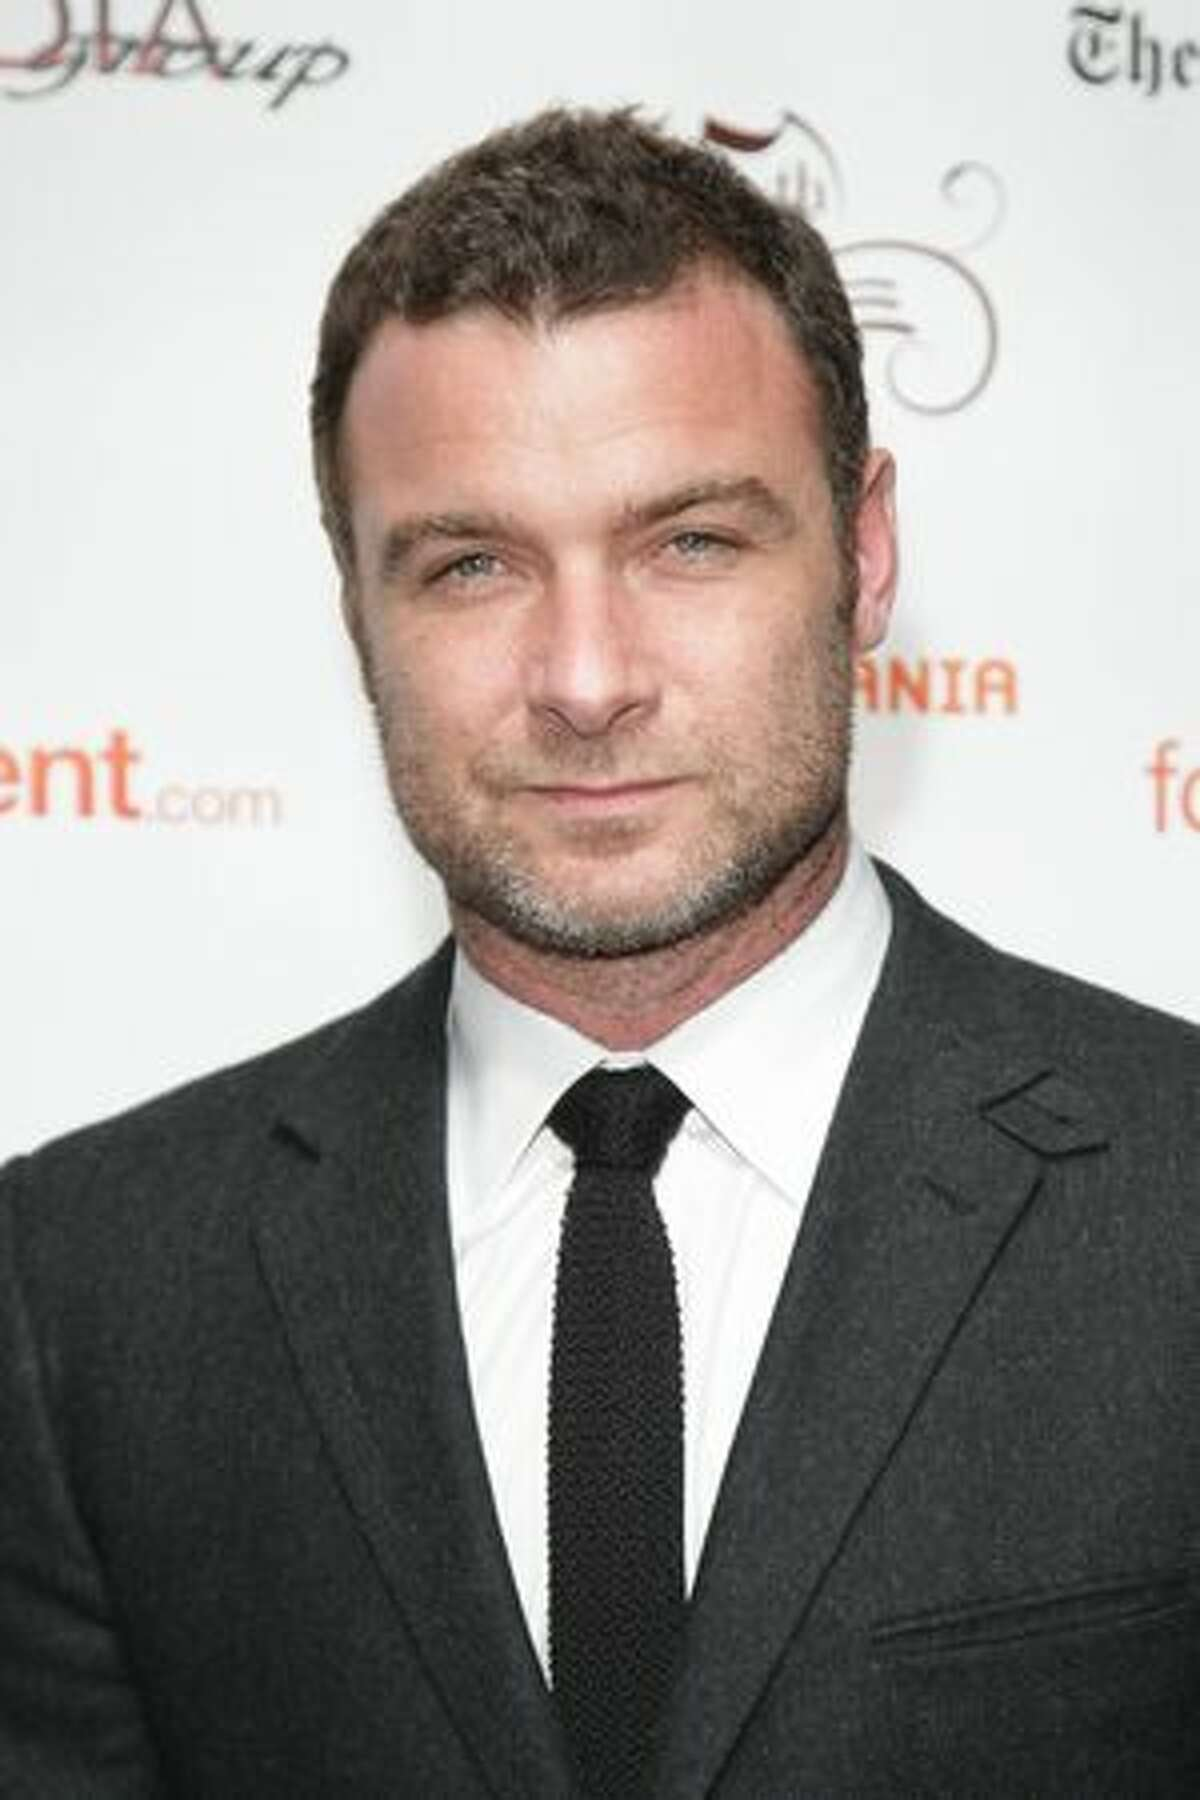 Actor Liev Schreiber arrives at the 55th Annual Drama Desk Awards at FH LaGuardia Concert Hall at Lincoln Center.